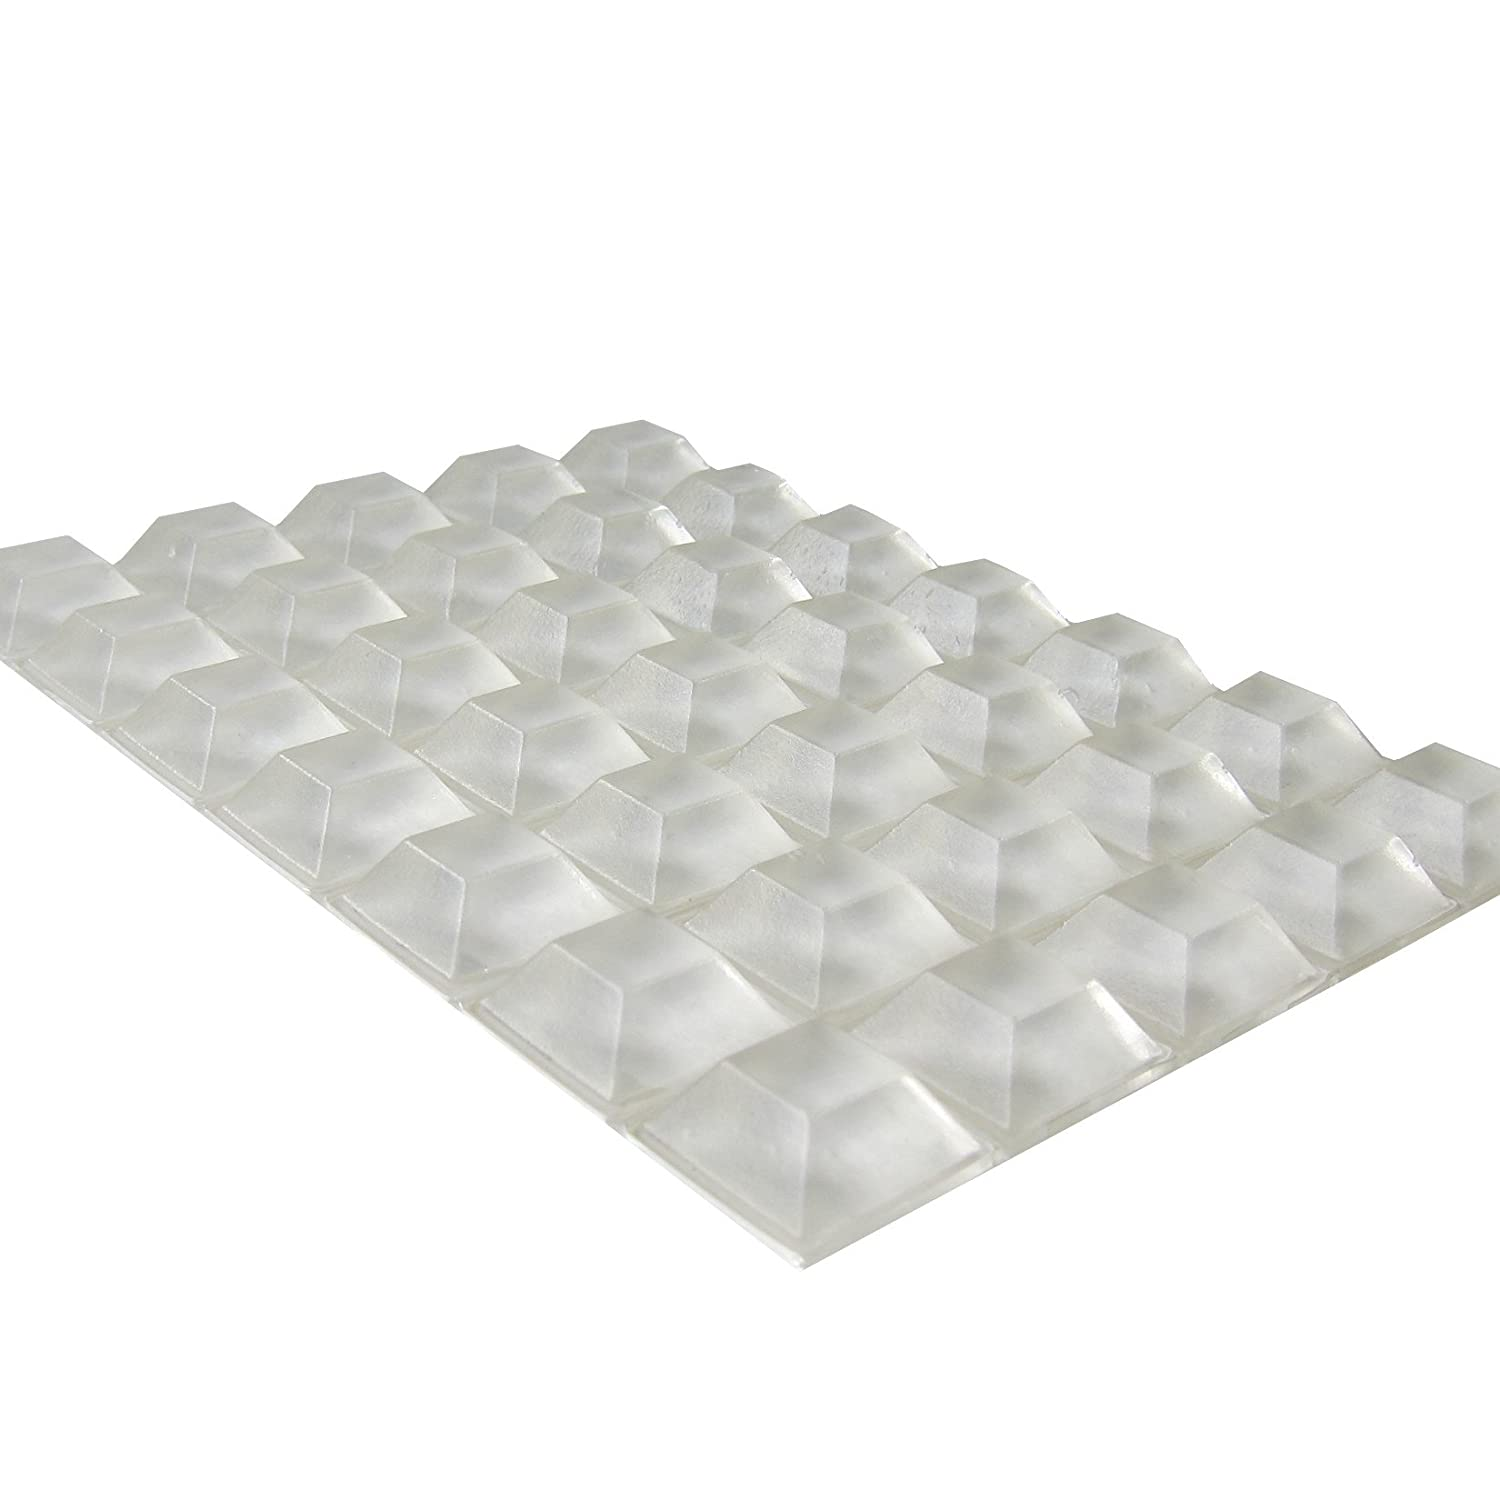 Clear Rubber Feet Adhesive Rubber Bumper - 35 Pack - Nonslip Transparent Cutting Board Feet - Tall Square Self Stick Bumpers for Electronics - Clear Bumper Pads